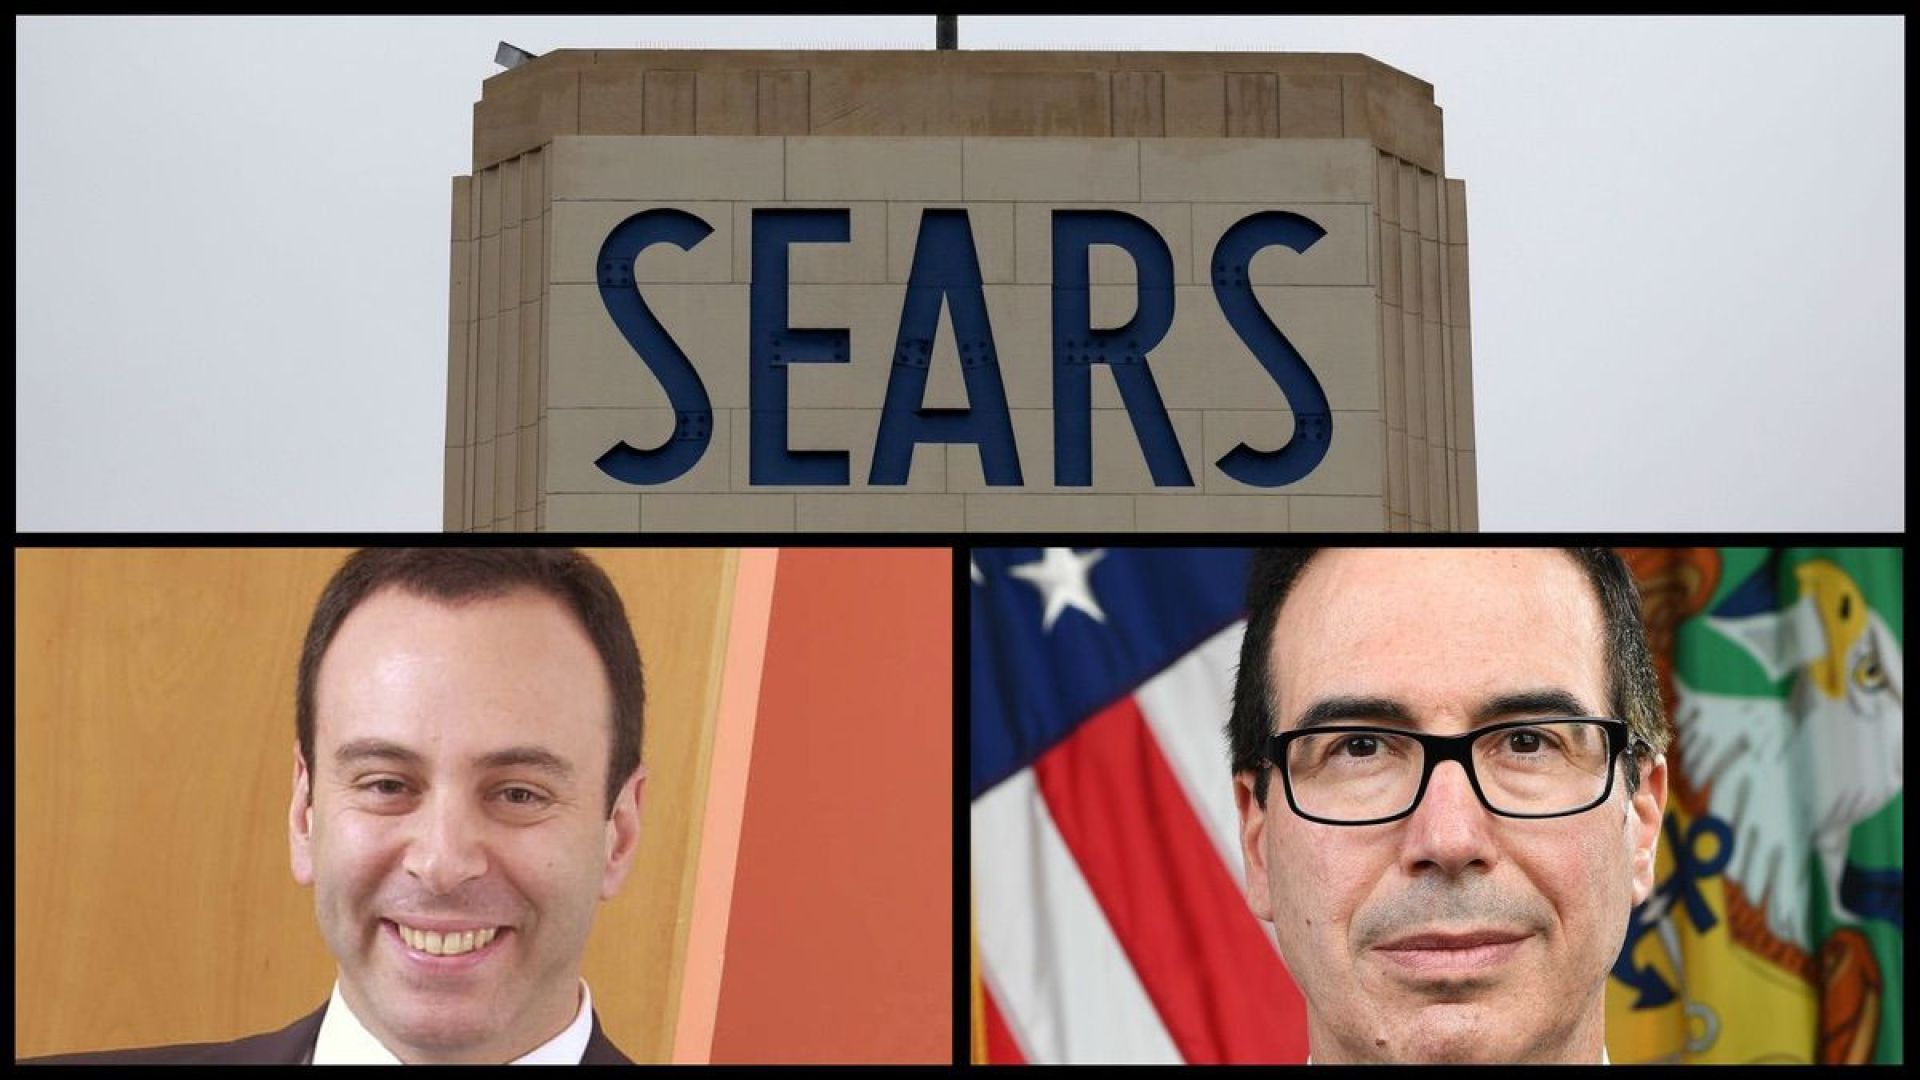 Sears building (AP), Former Sears Chairman and CEO Eddie Lampert (AP), and Treasury Secretary Steve Mnuchin (Official Photo)